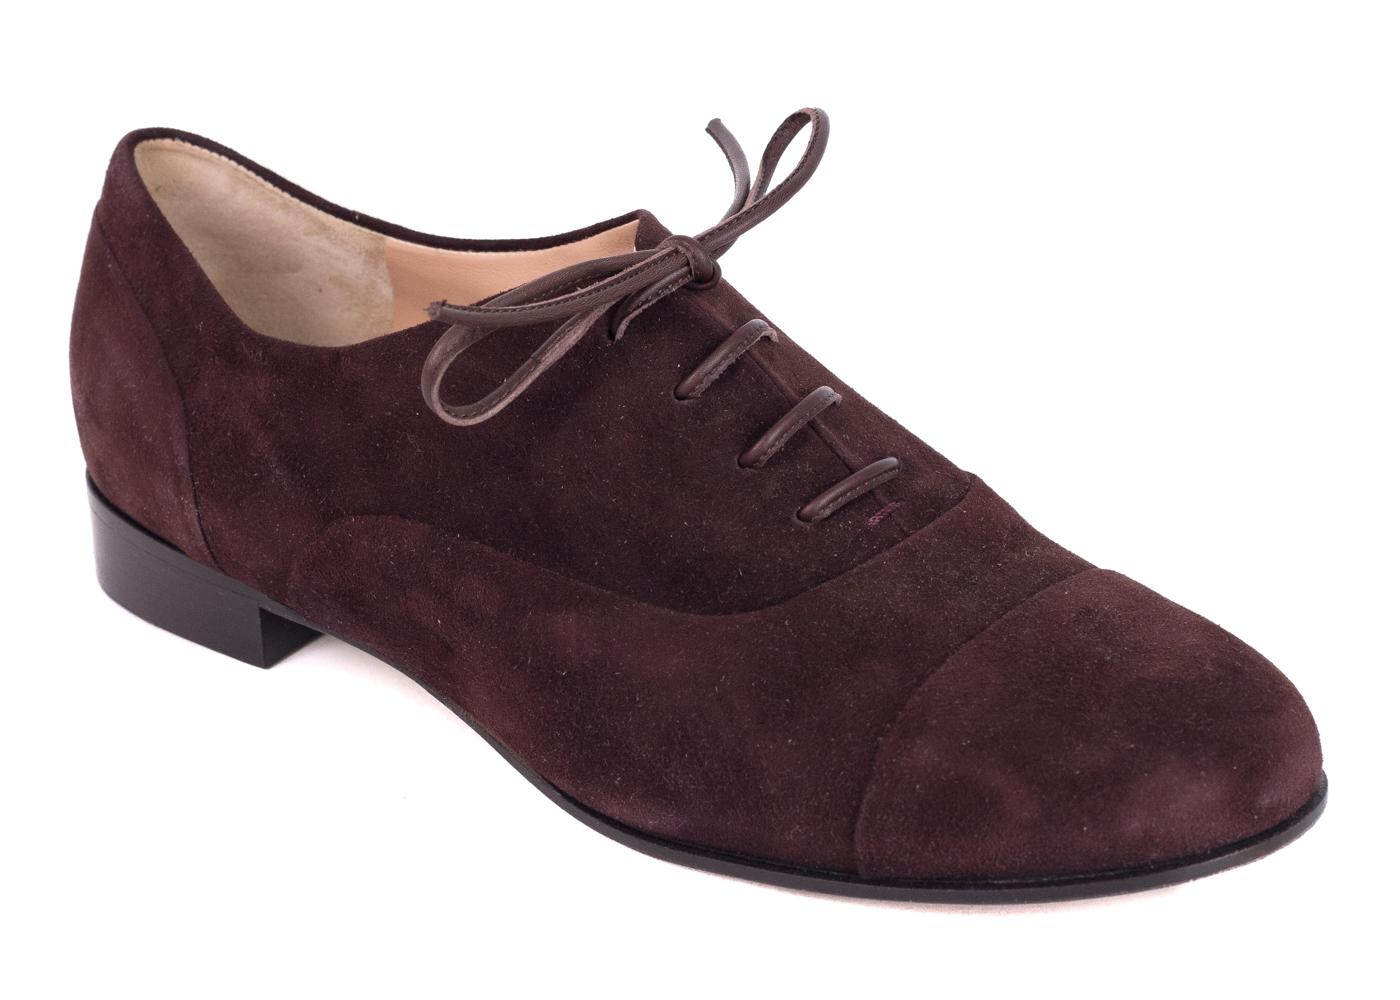 Gianvito Rossi Suede Round-Toe Oxfords shop for online kYKWO